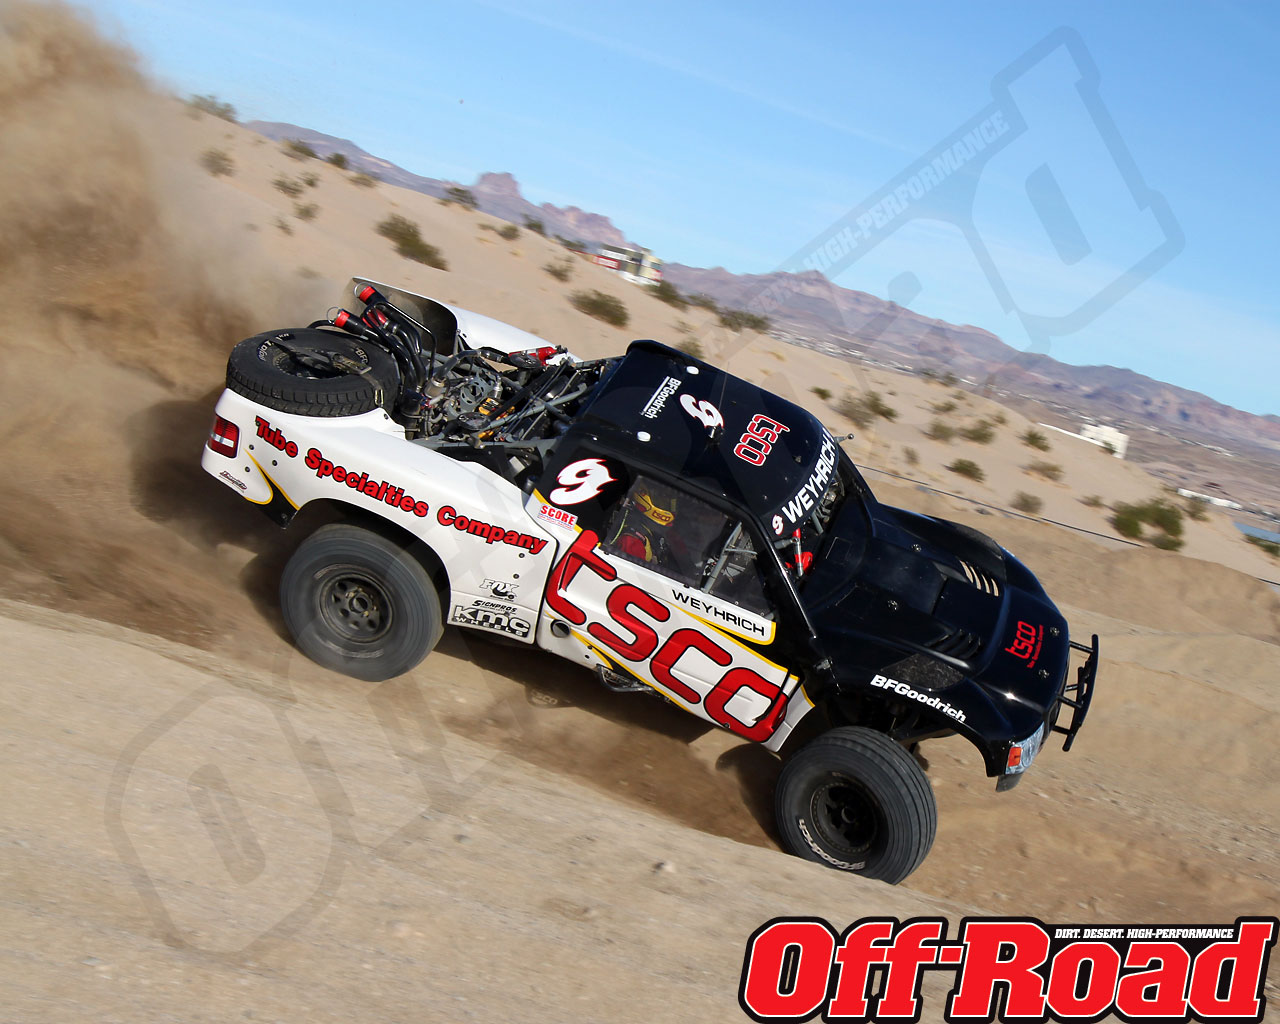 1002or 0641 o+2010 score laughlin desert challenge+trophy truck